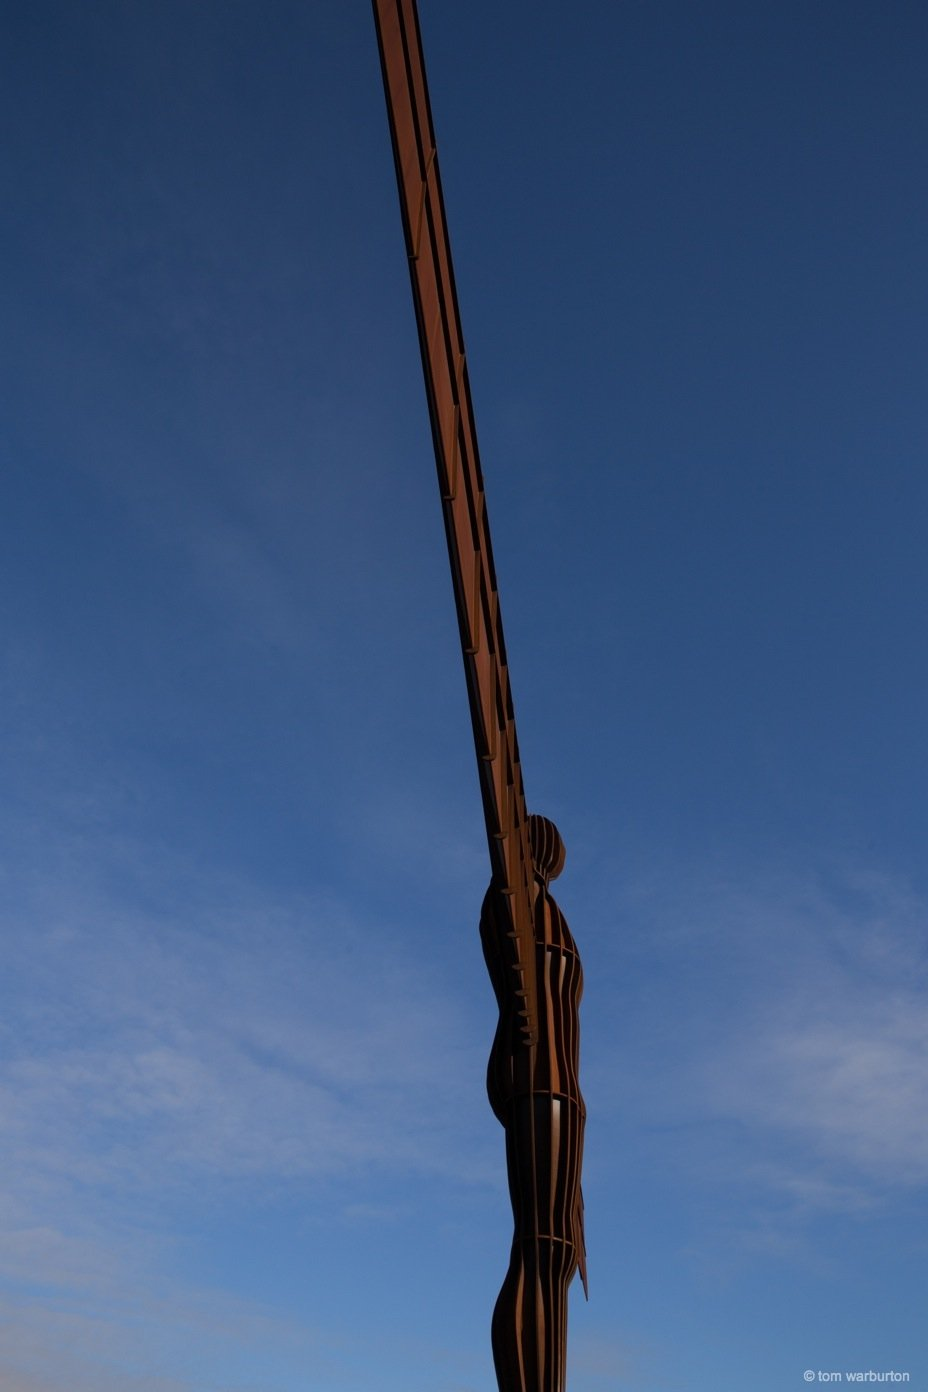 Angel of the North 4 gateshead The Angel of the North: standing tall